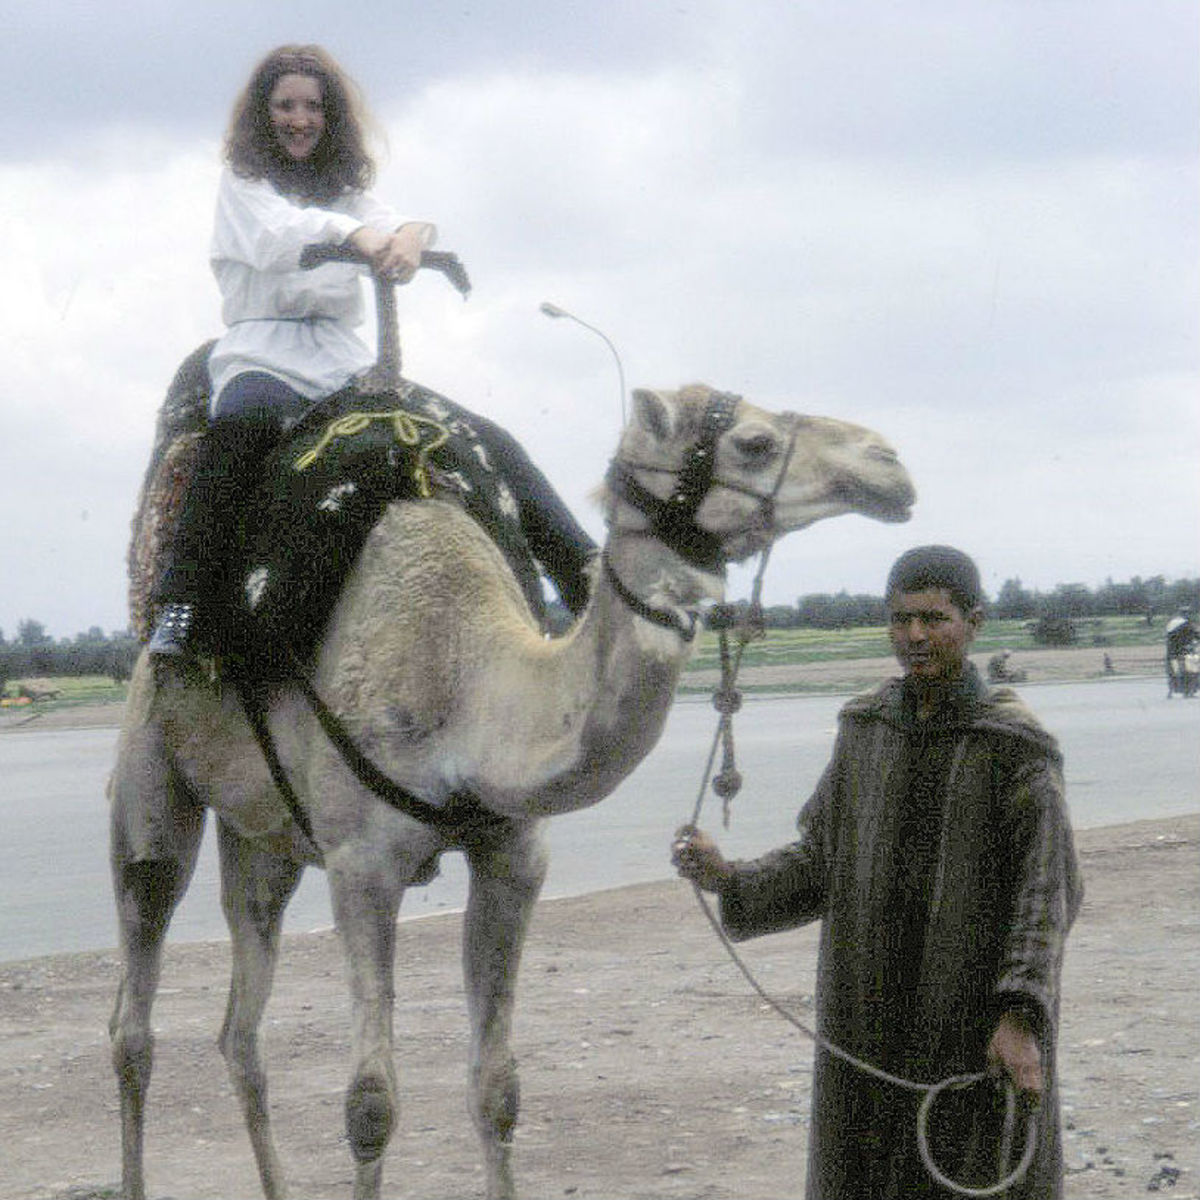 One of my favourite photographs. Me, the young hippie, on a camel.